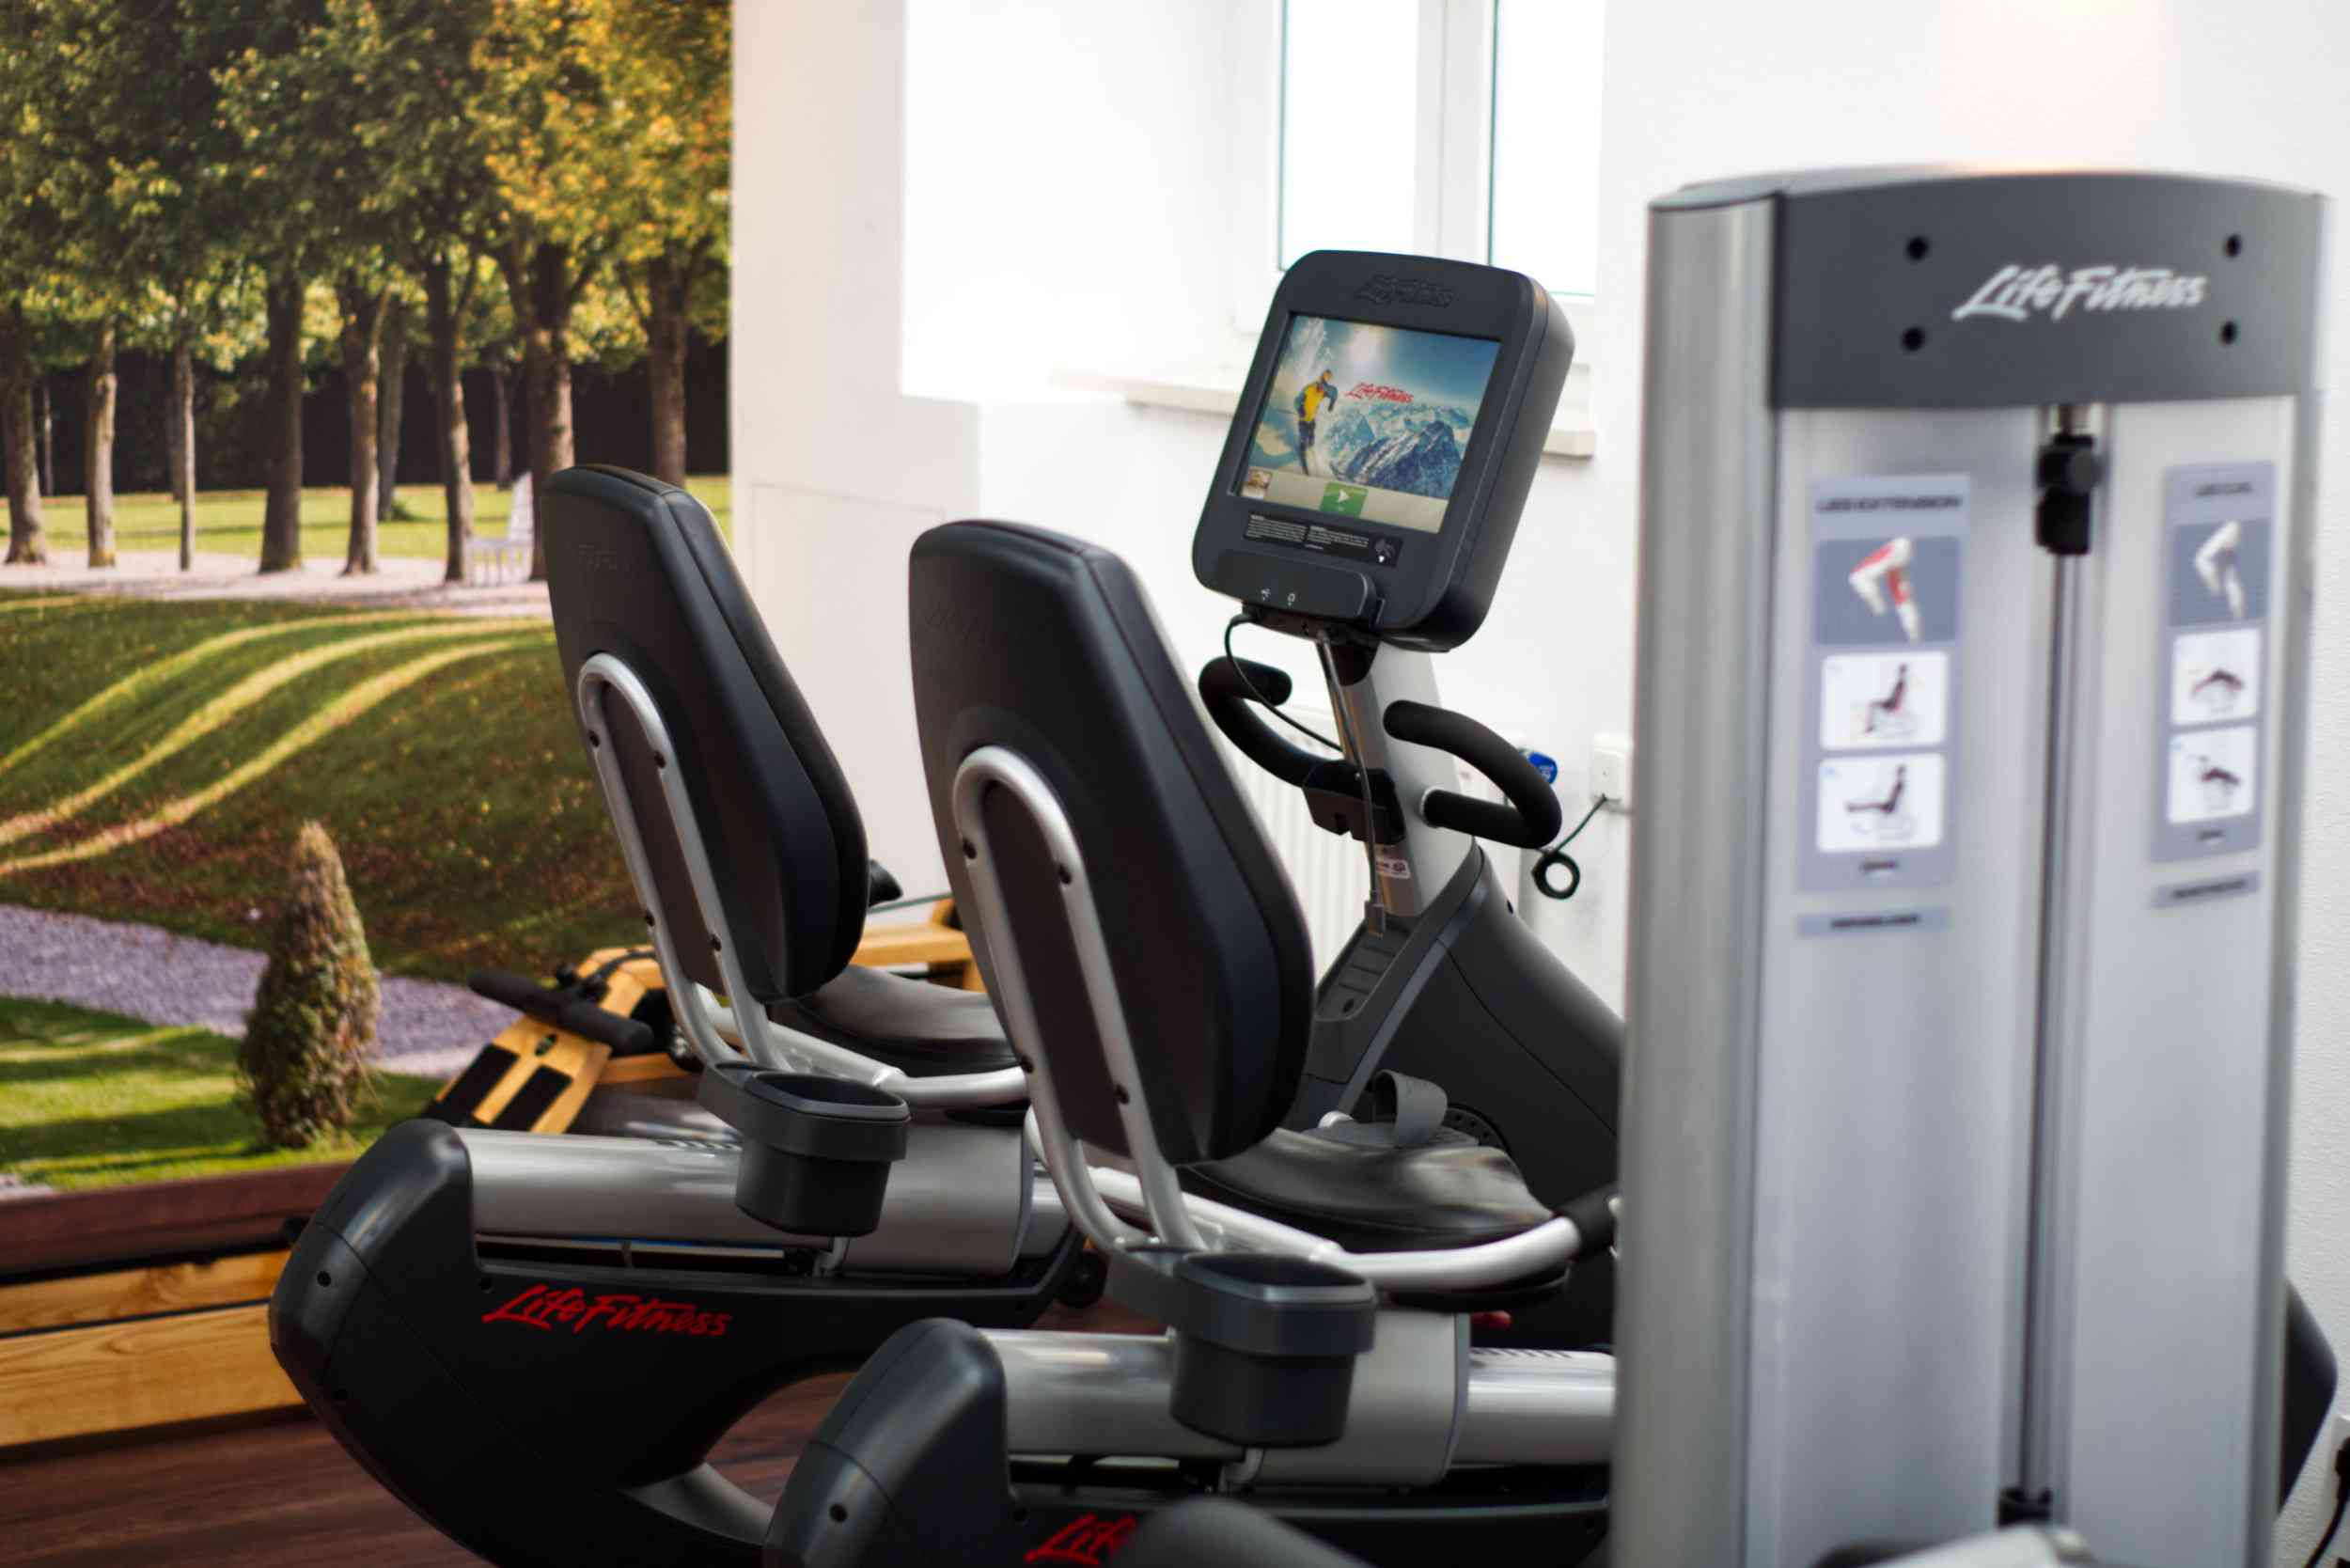 Bicycles in the fitness room